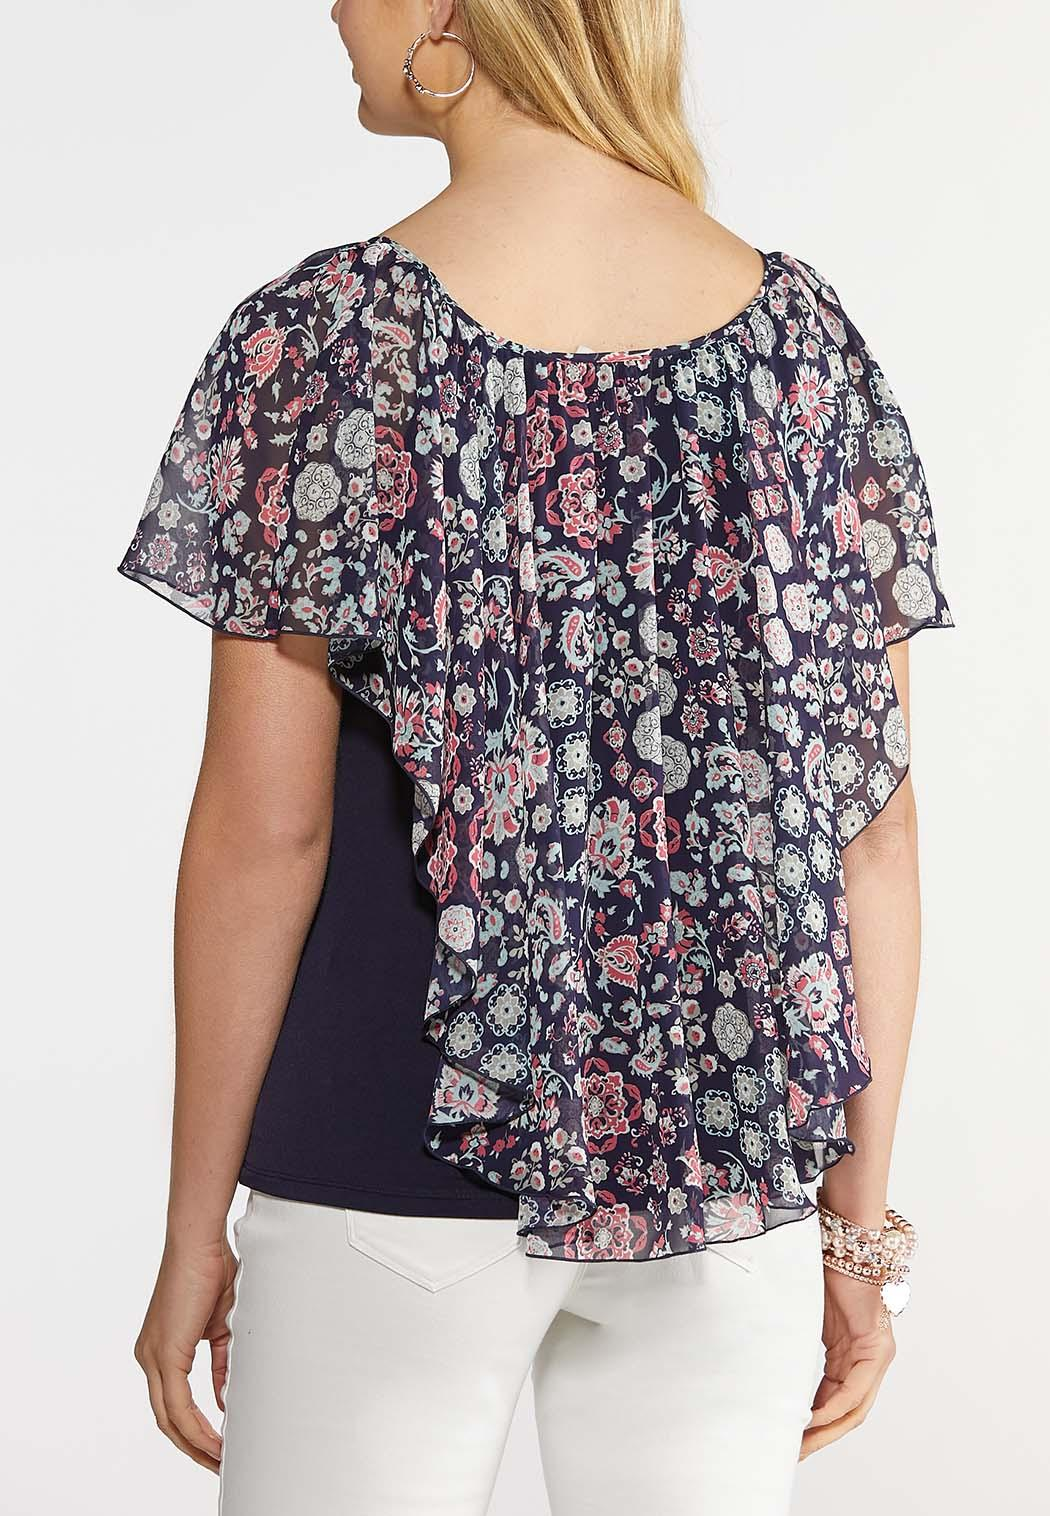 Plus Size Floral and Paisley Capelet Top (Item #43929011)